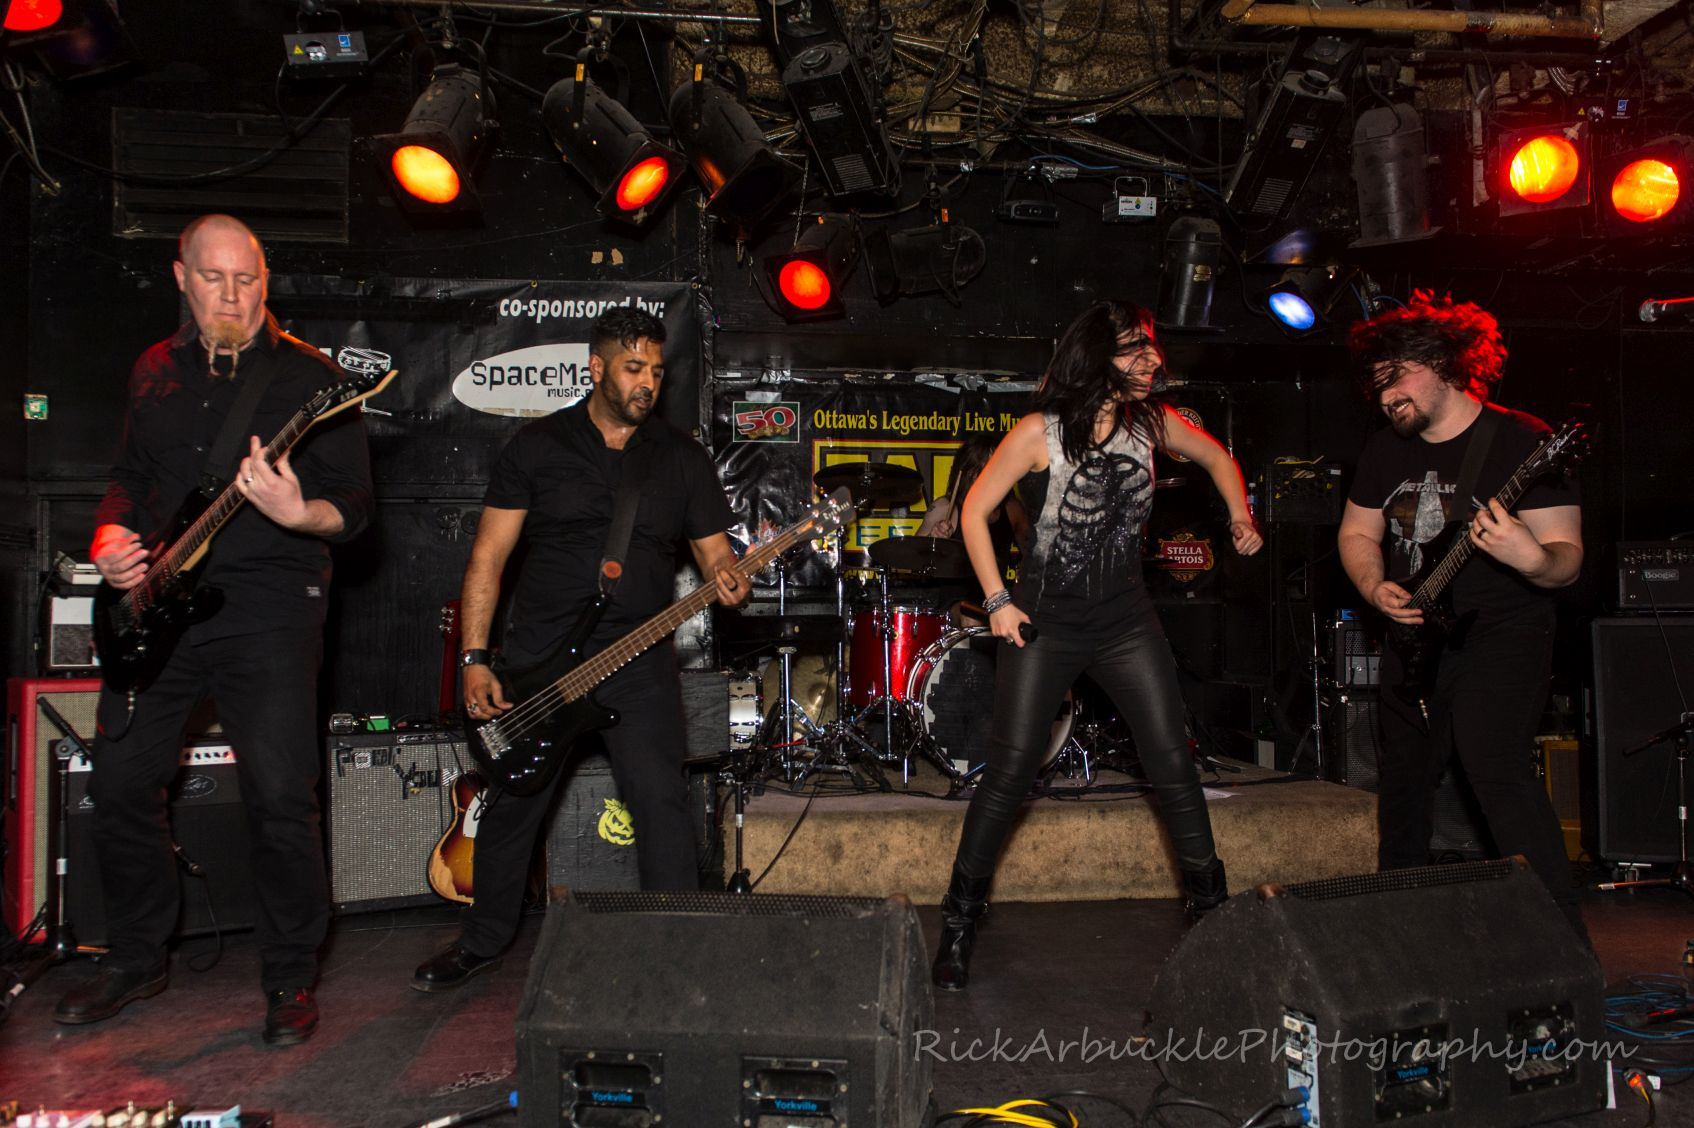 Aenigma at Zaphod's 23